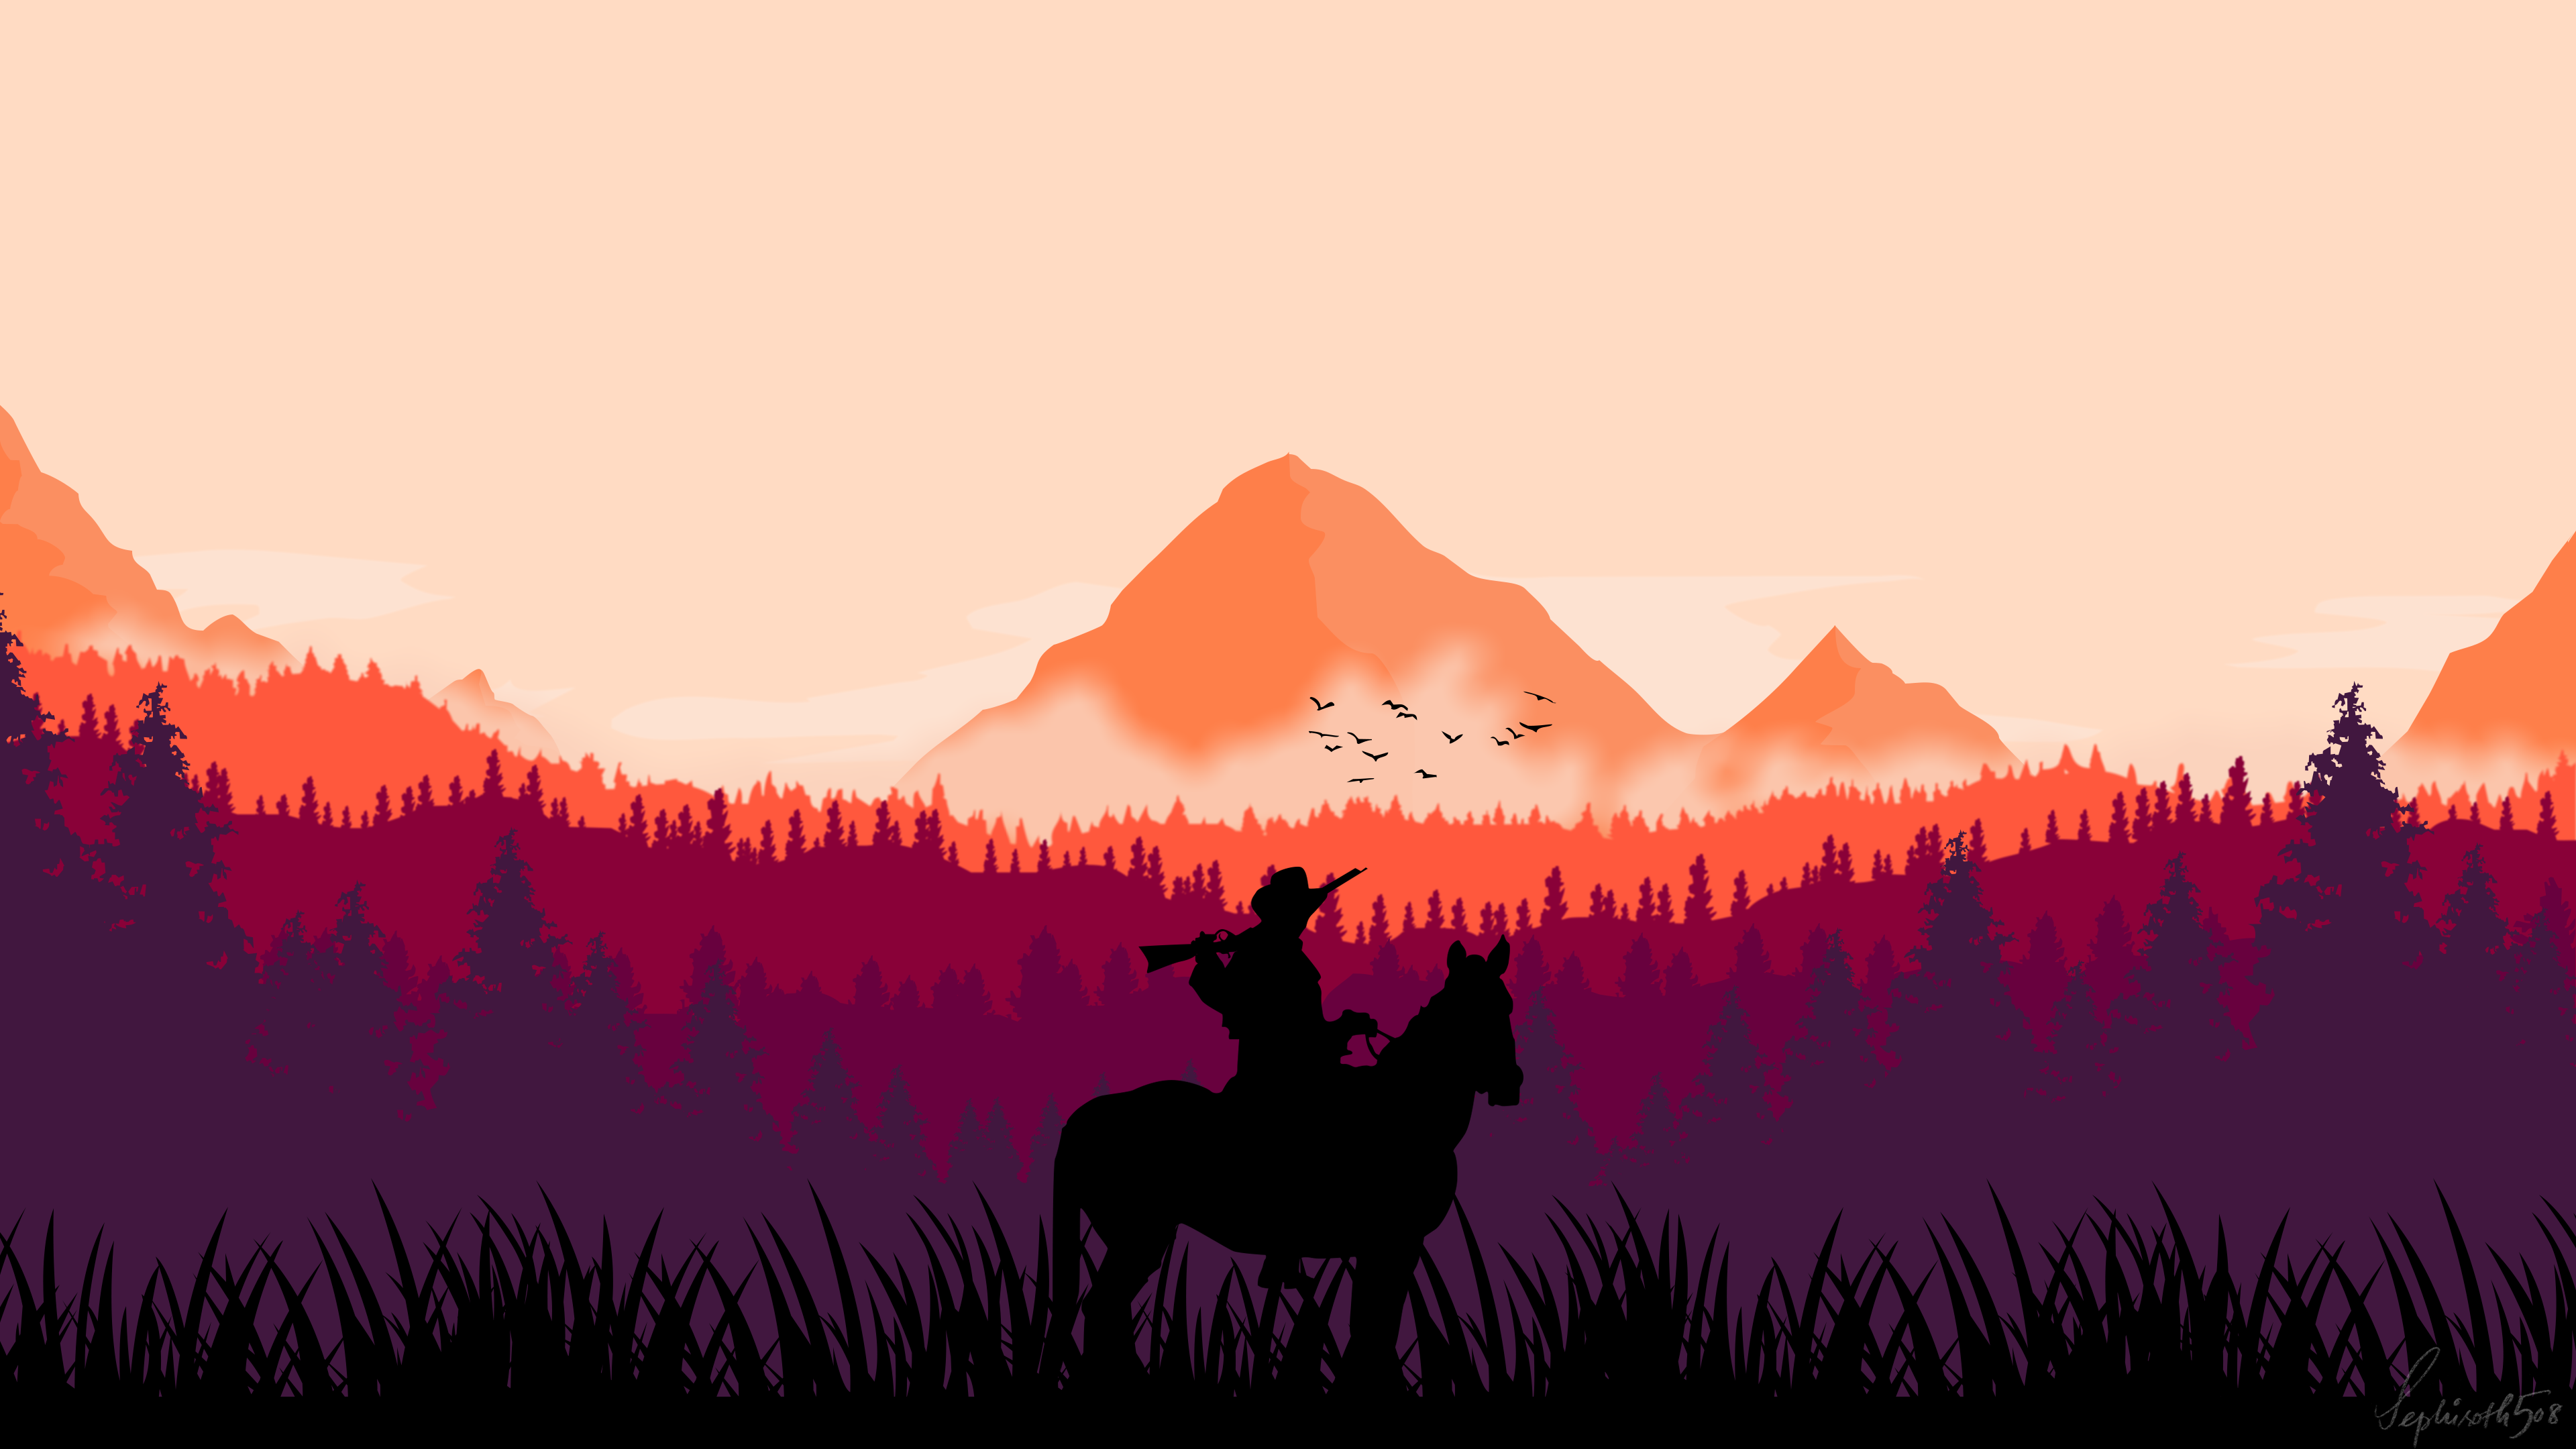 Made A Vector Art For Red Dead Redemption Gamers Red Dead Redemption Background Images Egyptian Gods